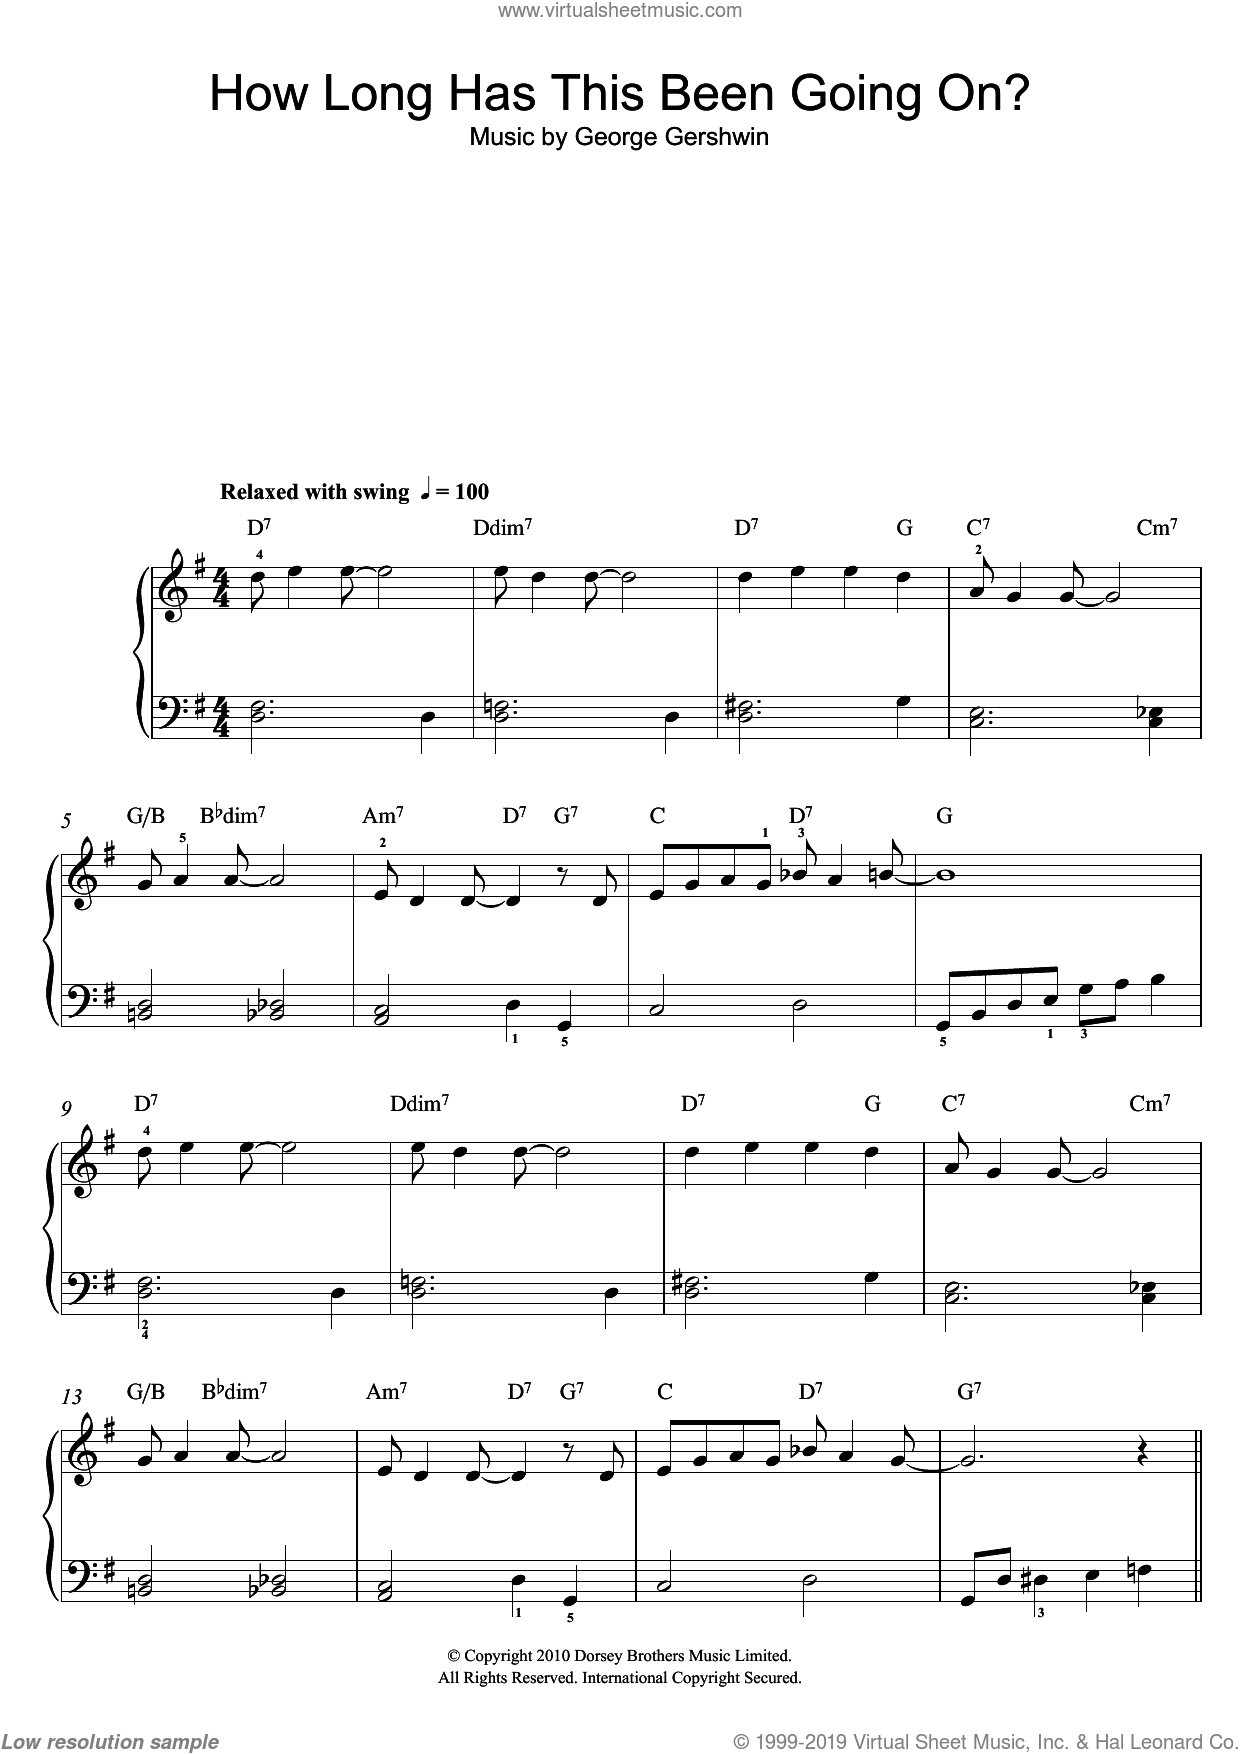 How Long Has This Been Going On? sheet music for piano solo by George Gershwin